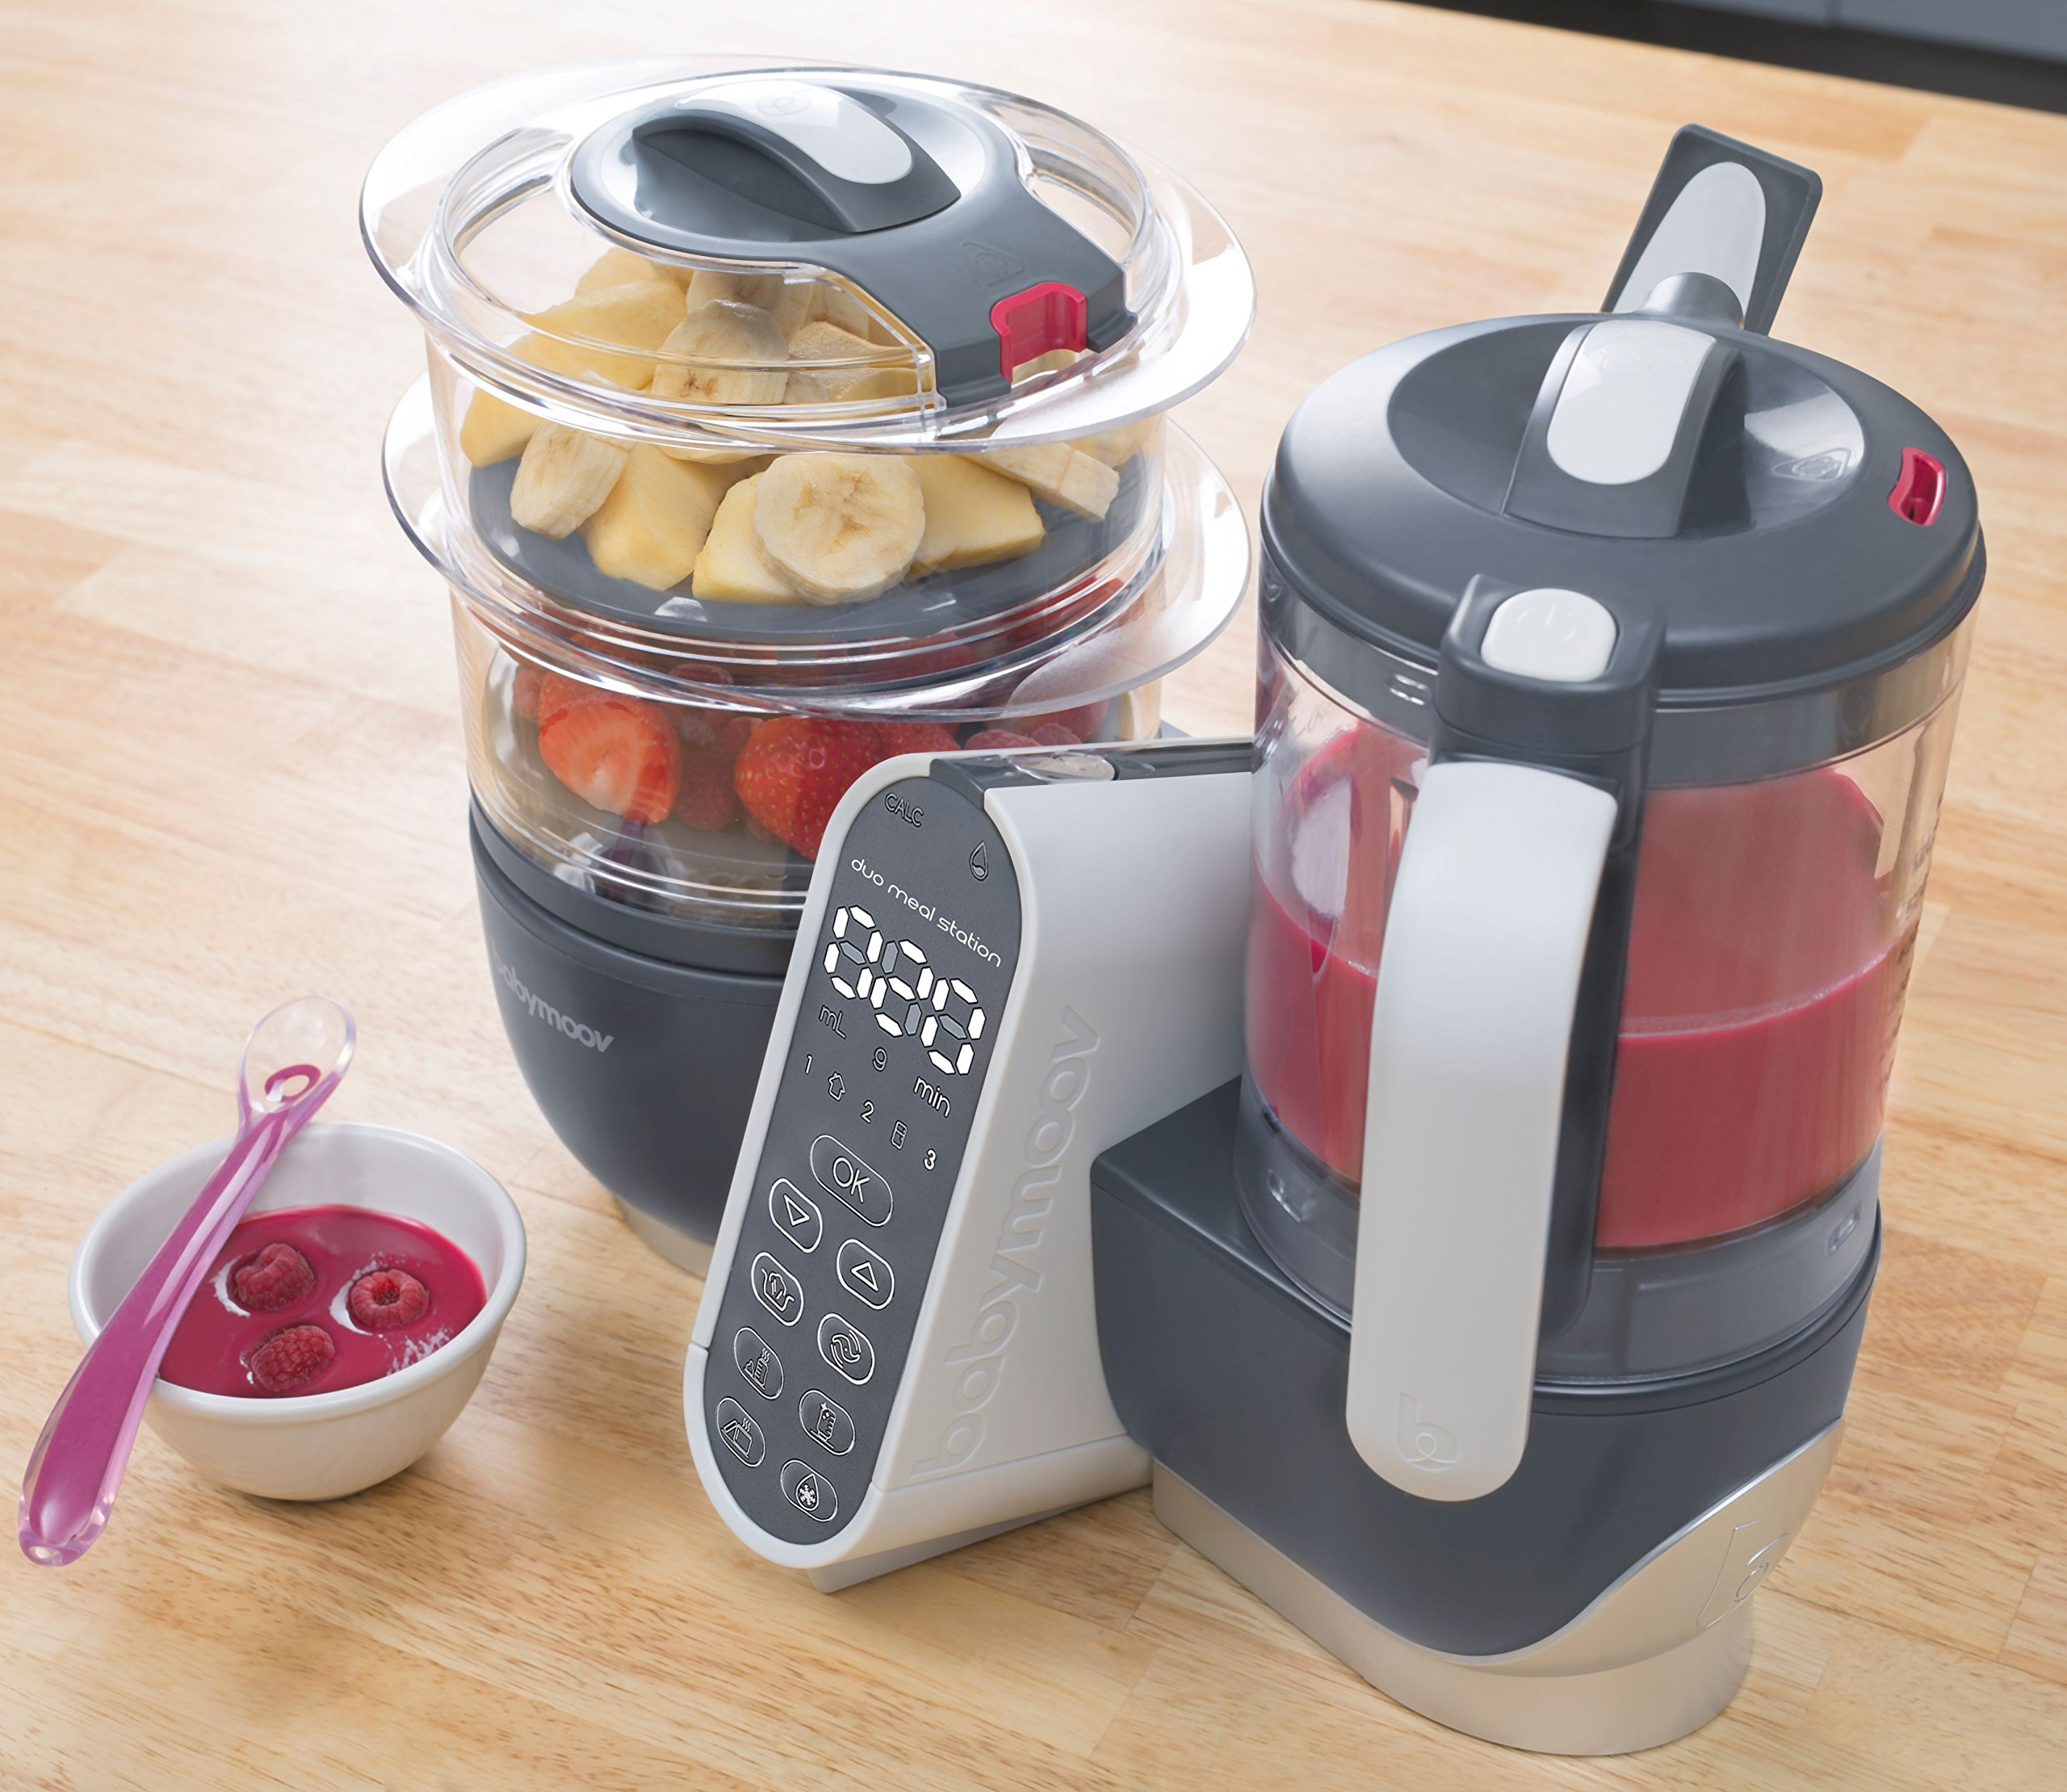 Duo Meal Station Food Maker | 6 in 1 Food Processor with Steam Cooker, Multi-Speed Blender, Baby Purees, Warmer, Defroster, Sterilizer (2019 NEW VERSION) by Babymoov (Image #3)